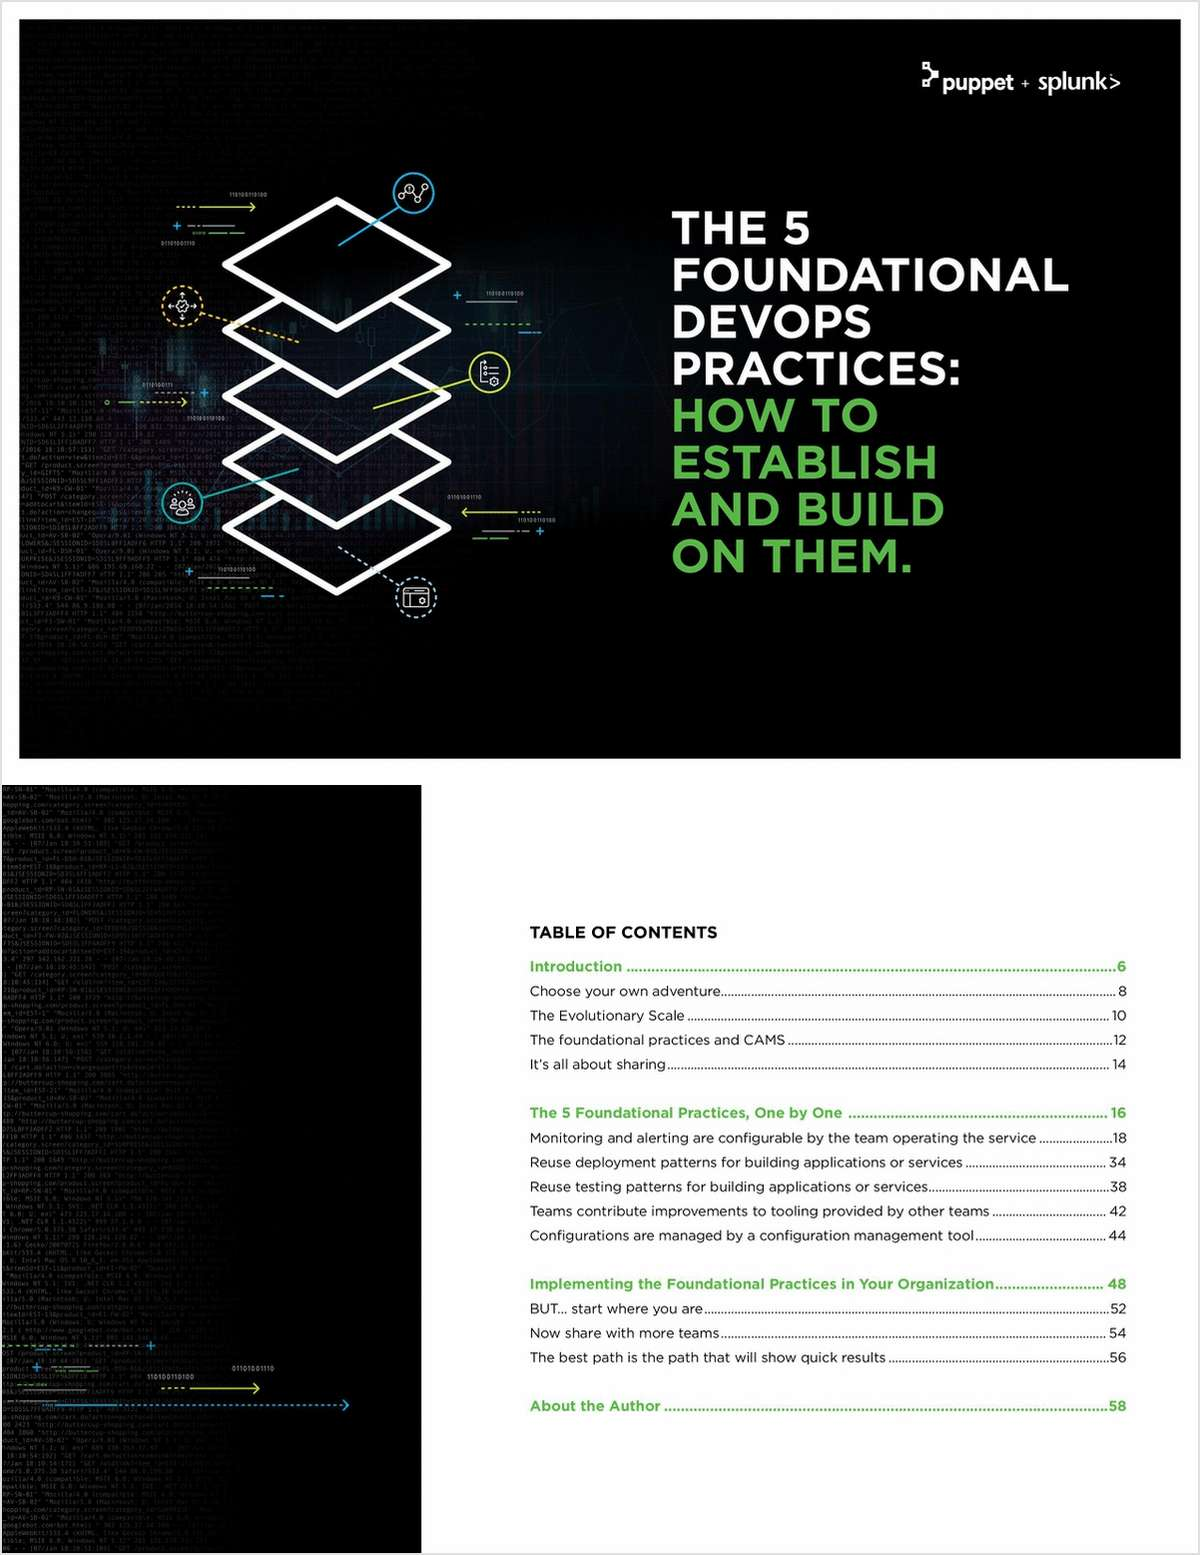 The 5 Foundational DevOps Practices: How to Establish and Build Them